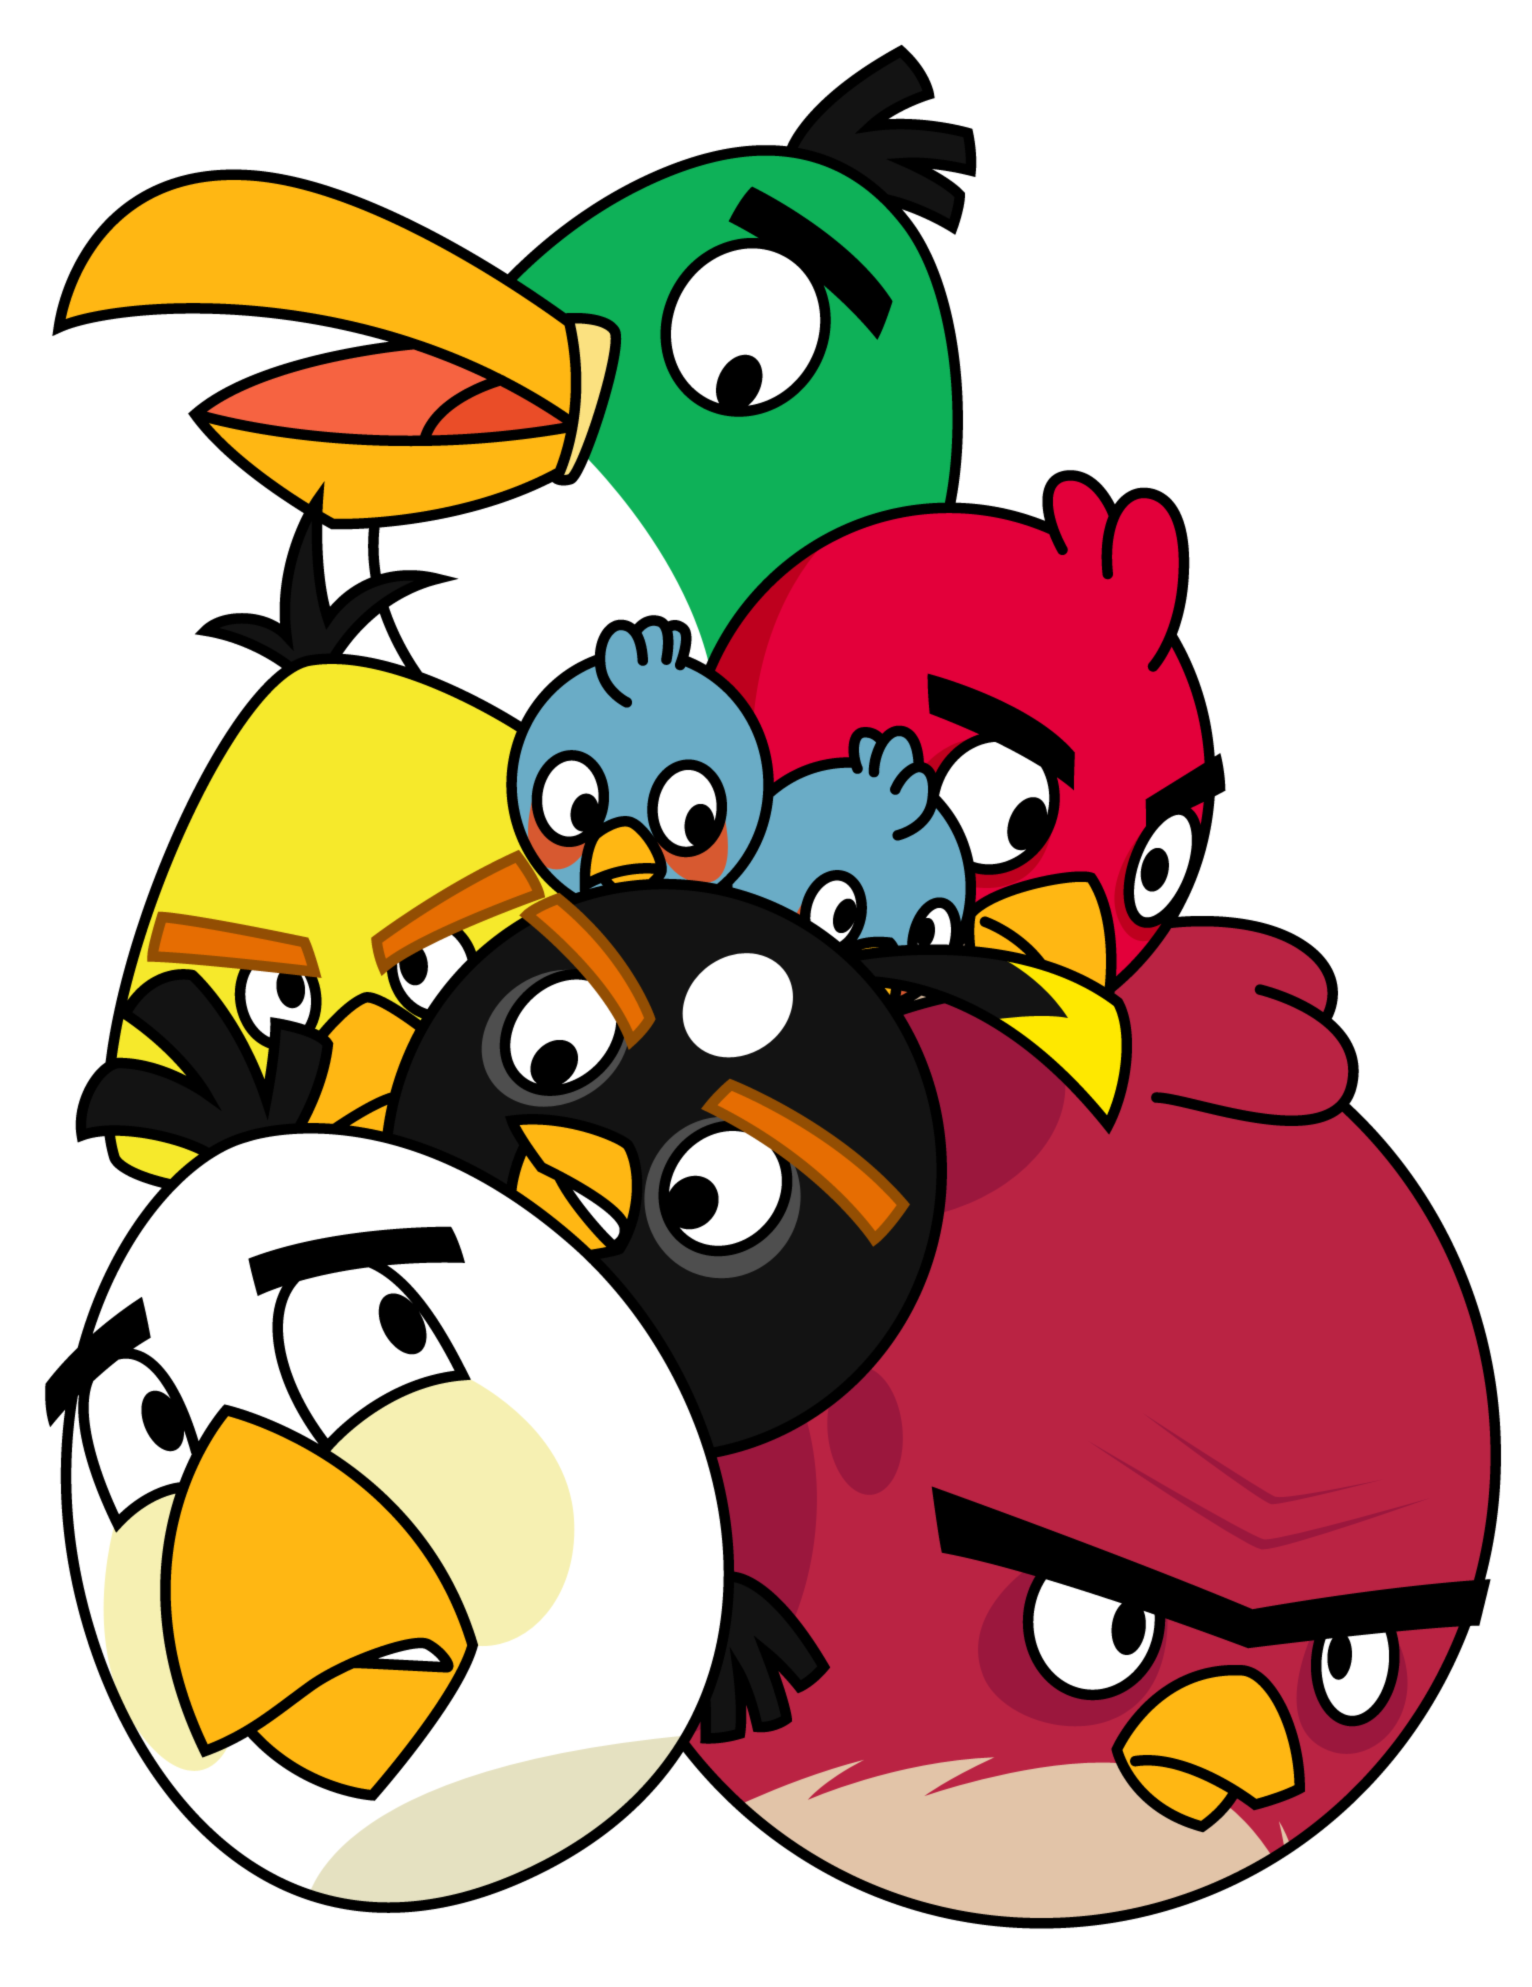 . PlusPng.com Pile of Angry Birds by Gav-Imp PlusPng.com  - Angry Birds PNG